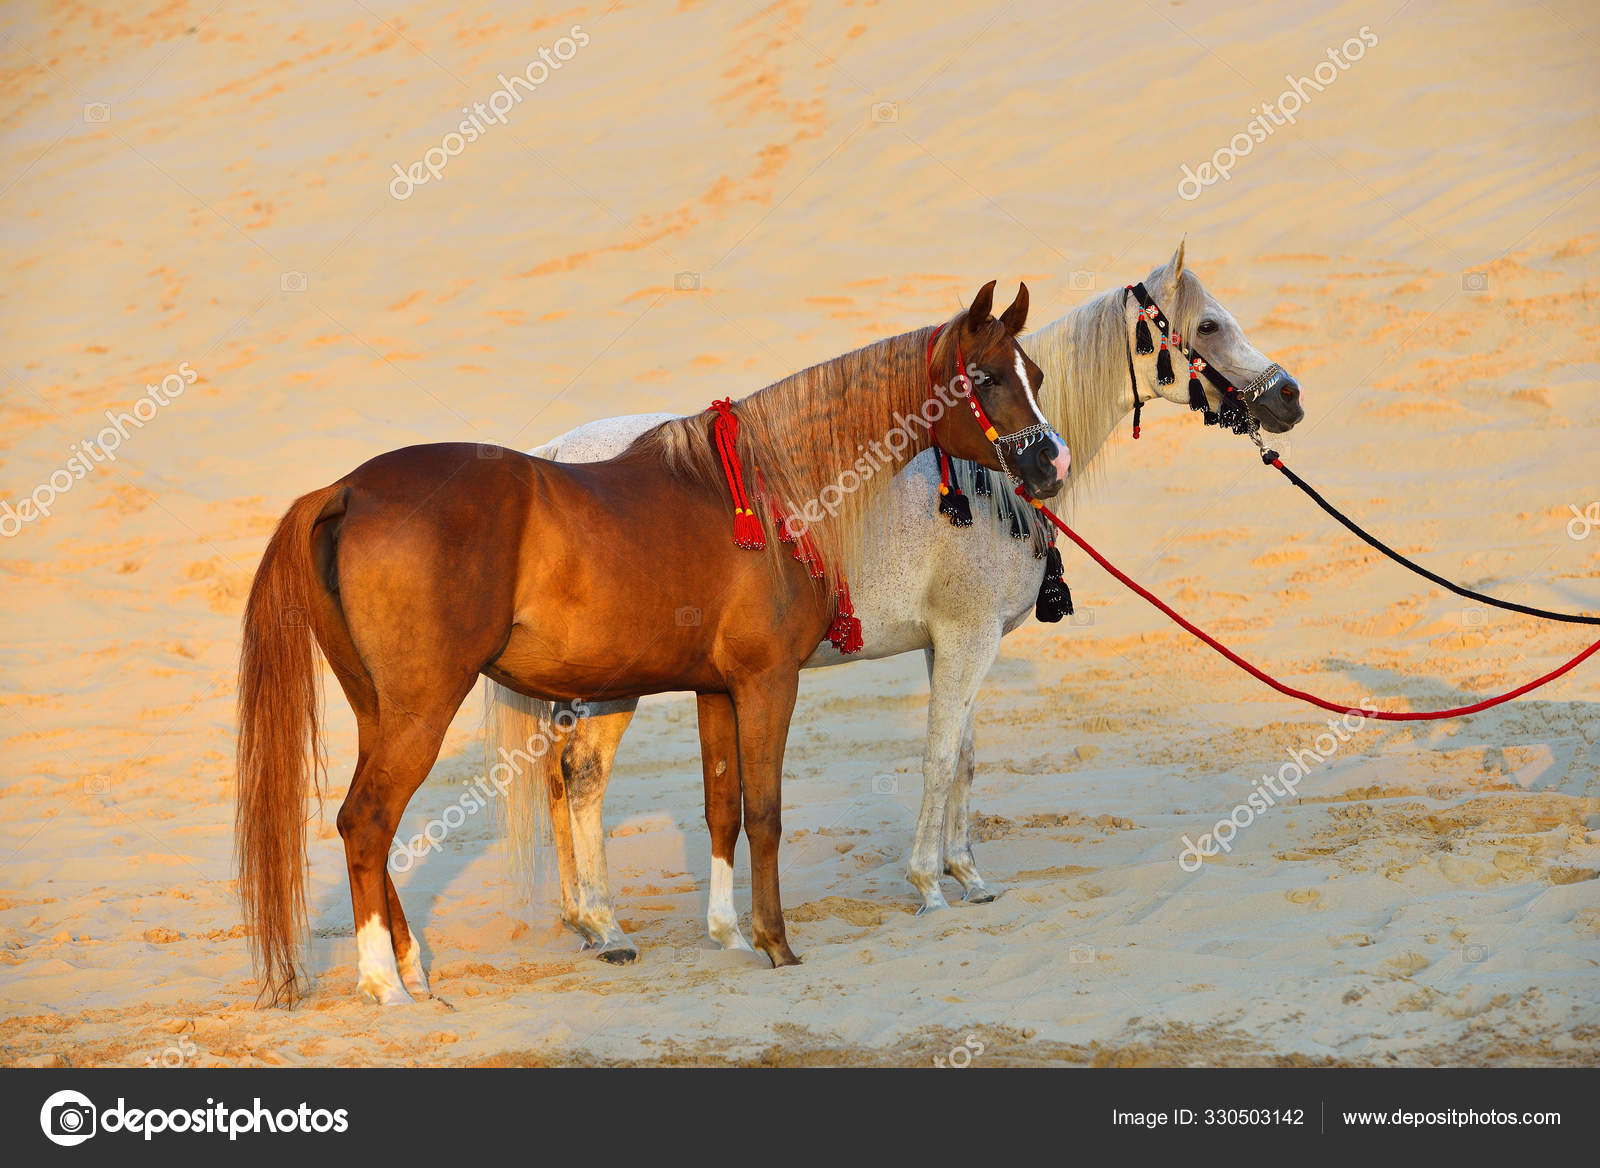 Two Arabian Horses Traditional Tack Halters Breastplates Standing Sand Desert Stock Photo C Arthorse 330503142